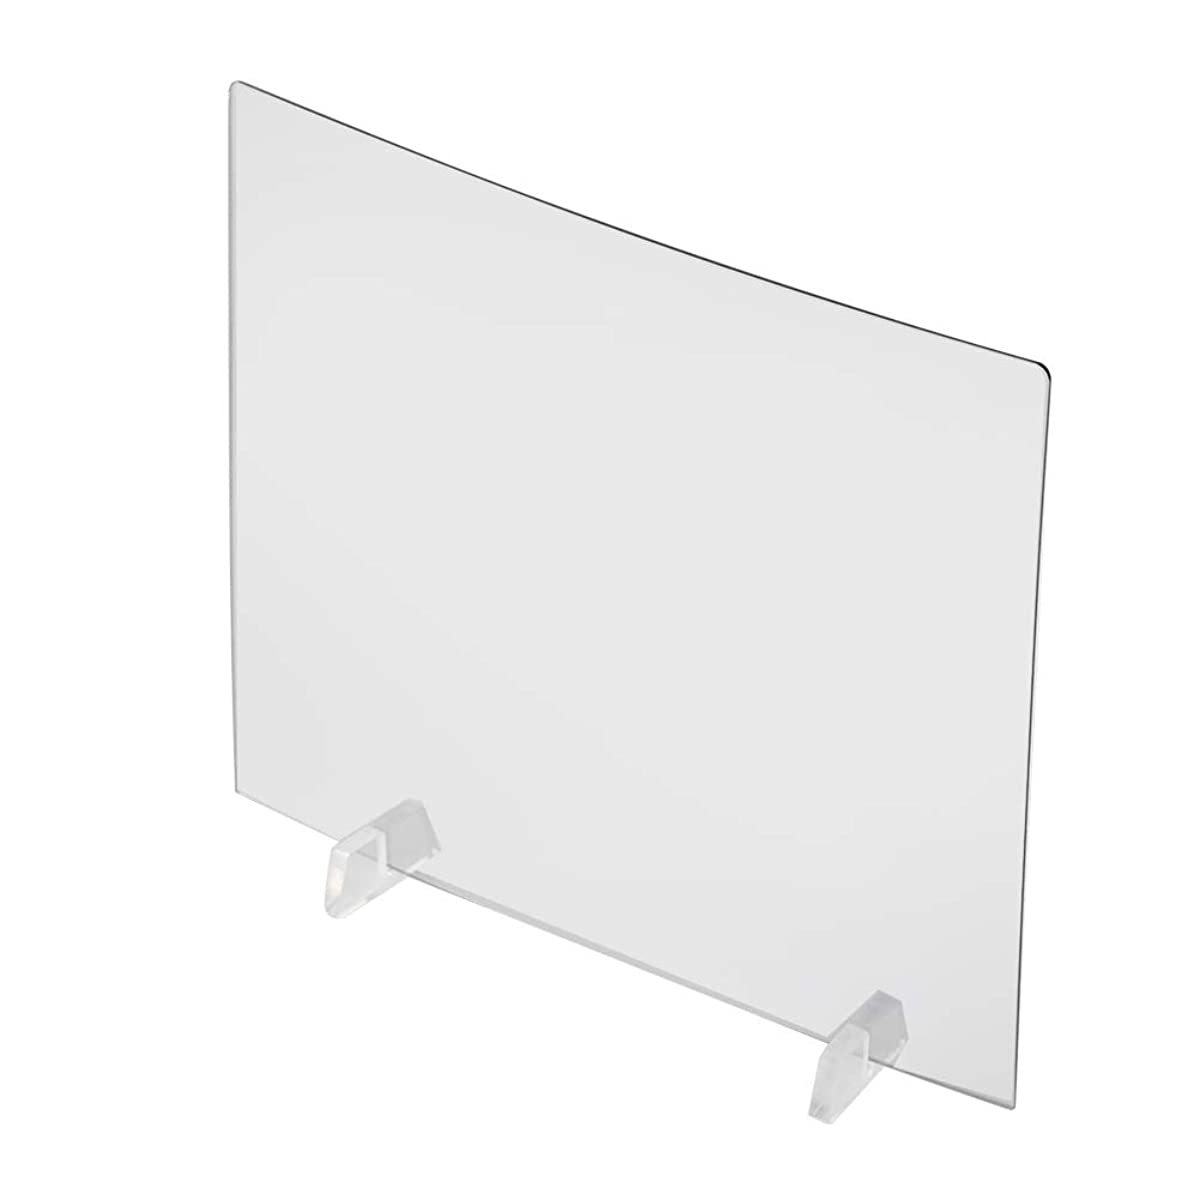 fosa Waterproof LED Light Box, Portable LED Tracing Light Pad Weeding Dimmable Brightness LED Drawing Pad Table Stencil Display Sketch Mirror Reflection with Brackets for Kid Adult Junior Artists